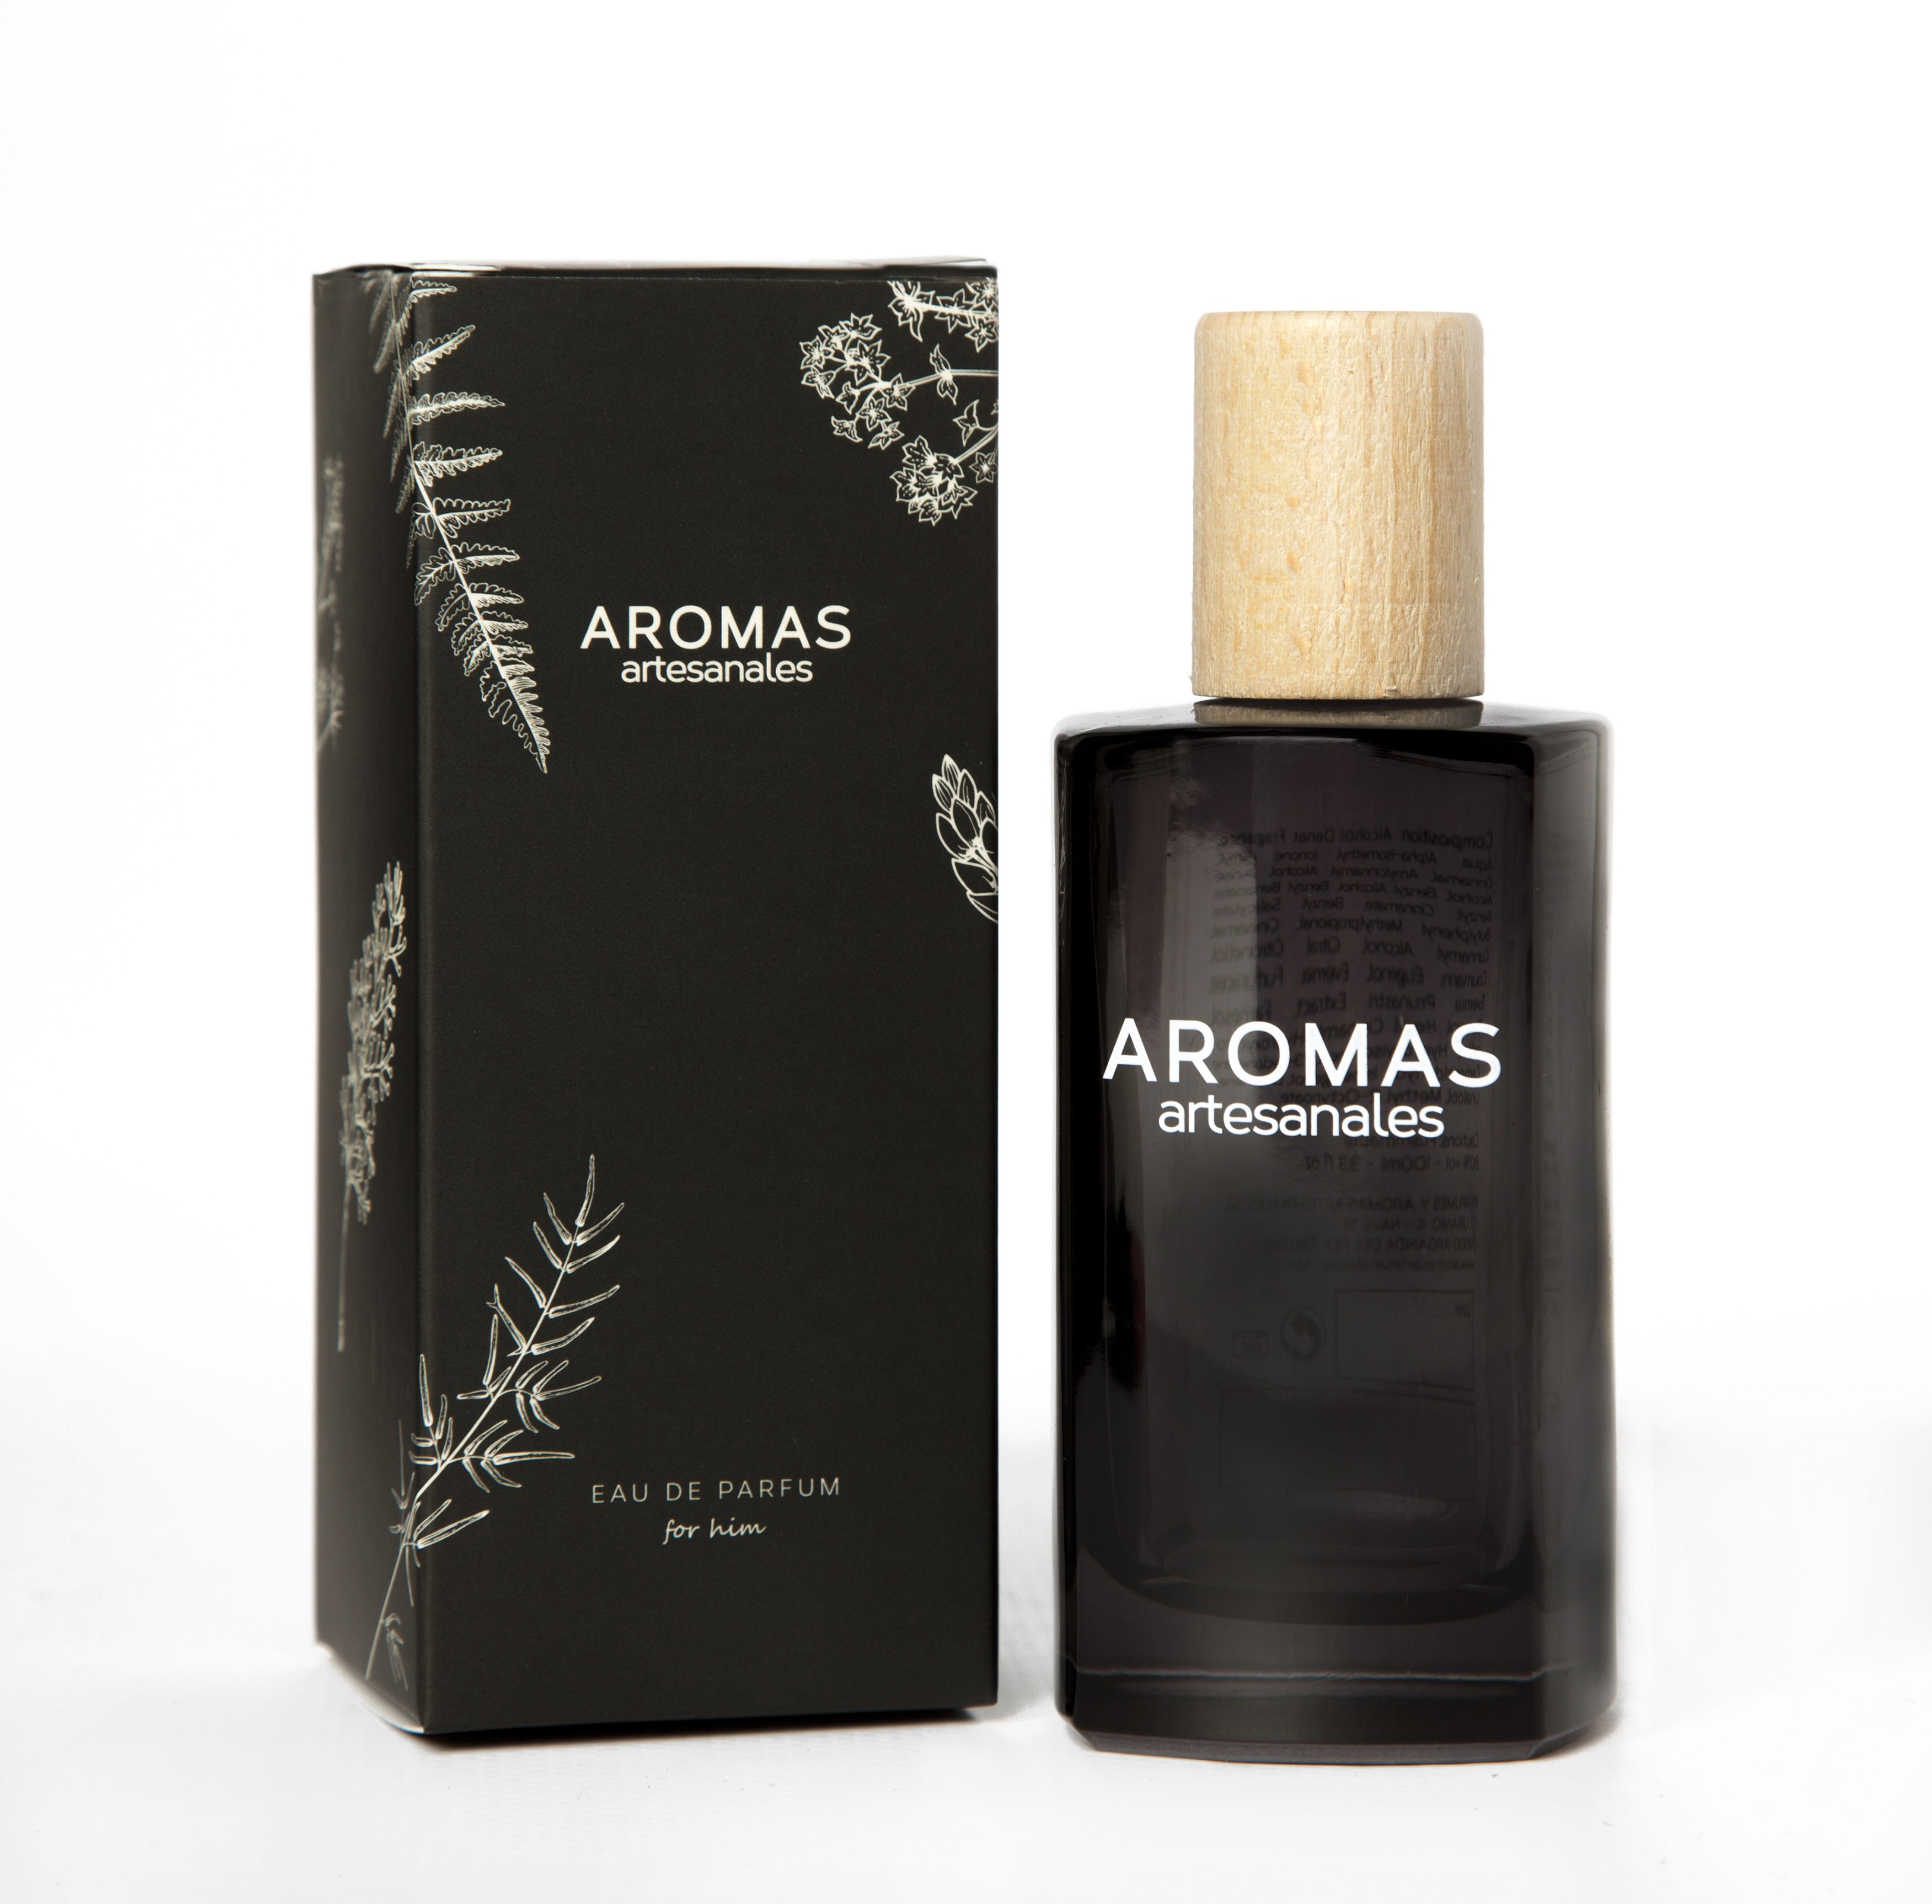 SCENTS CRAFT Brabos   Perfume With Spray For Men   Masculine Fragrance 100 Ml   Different Scents